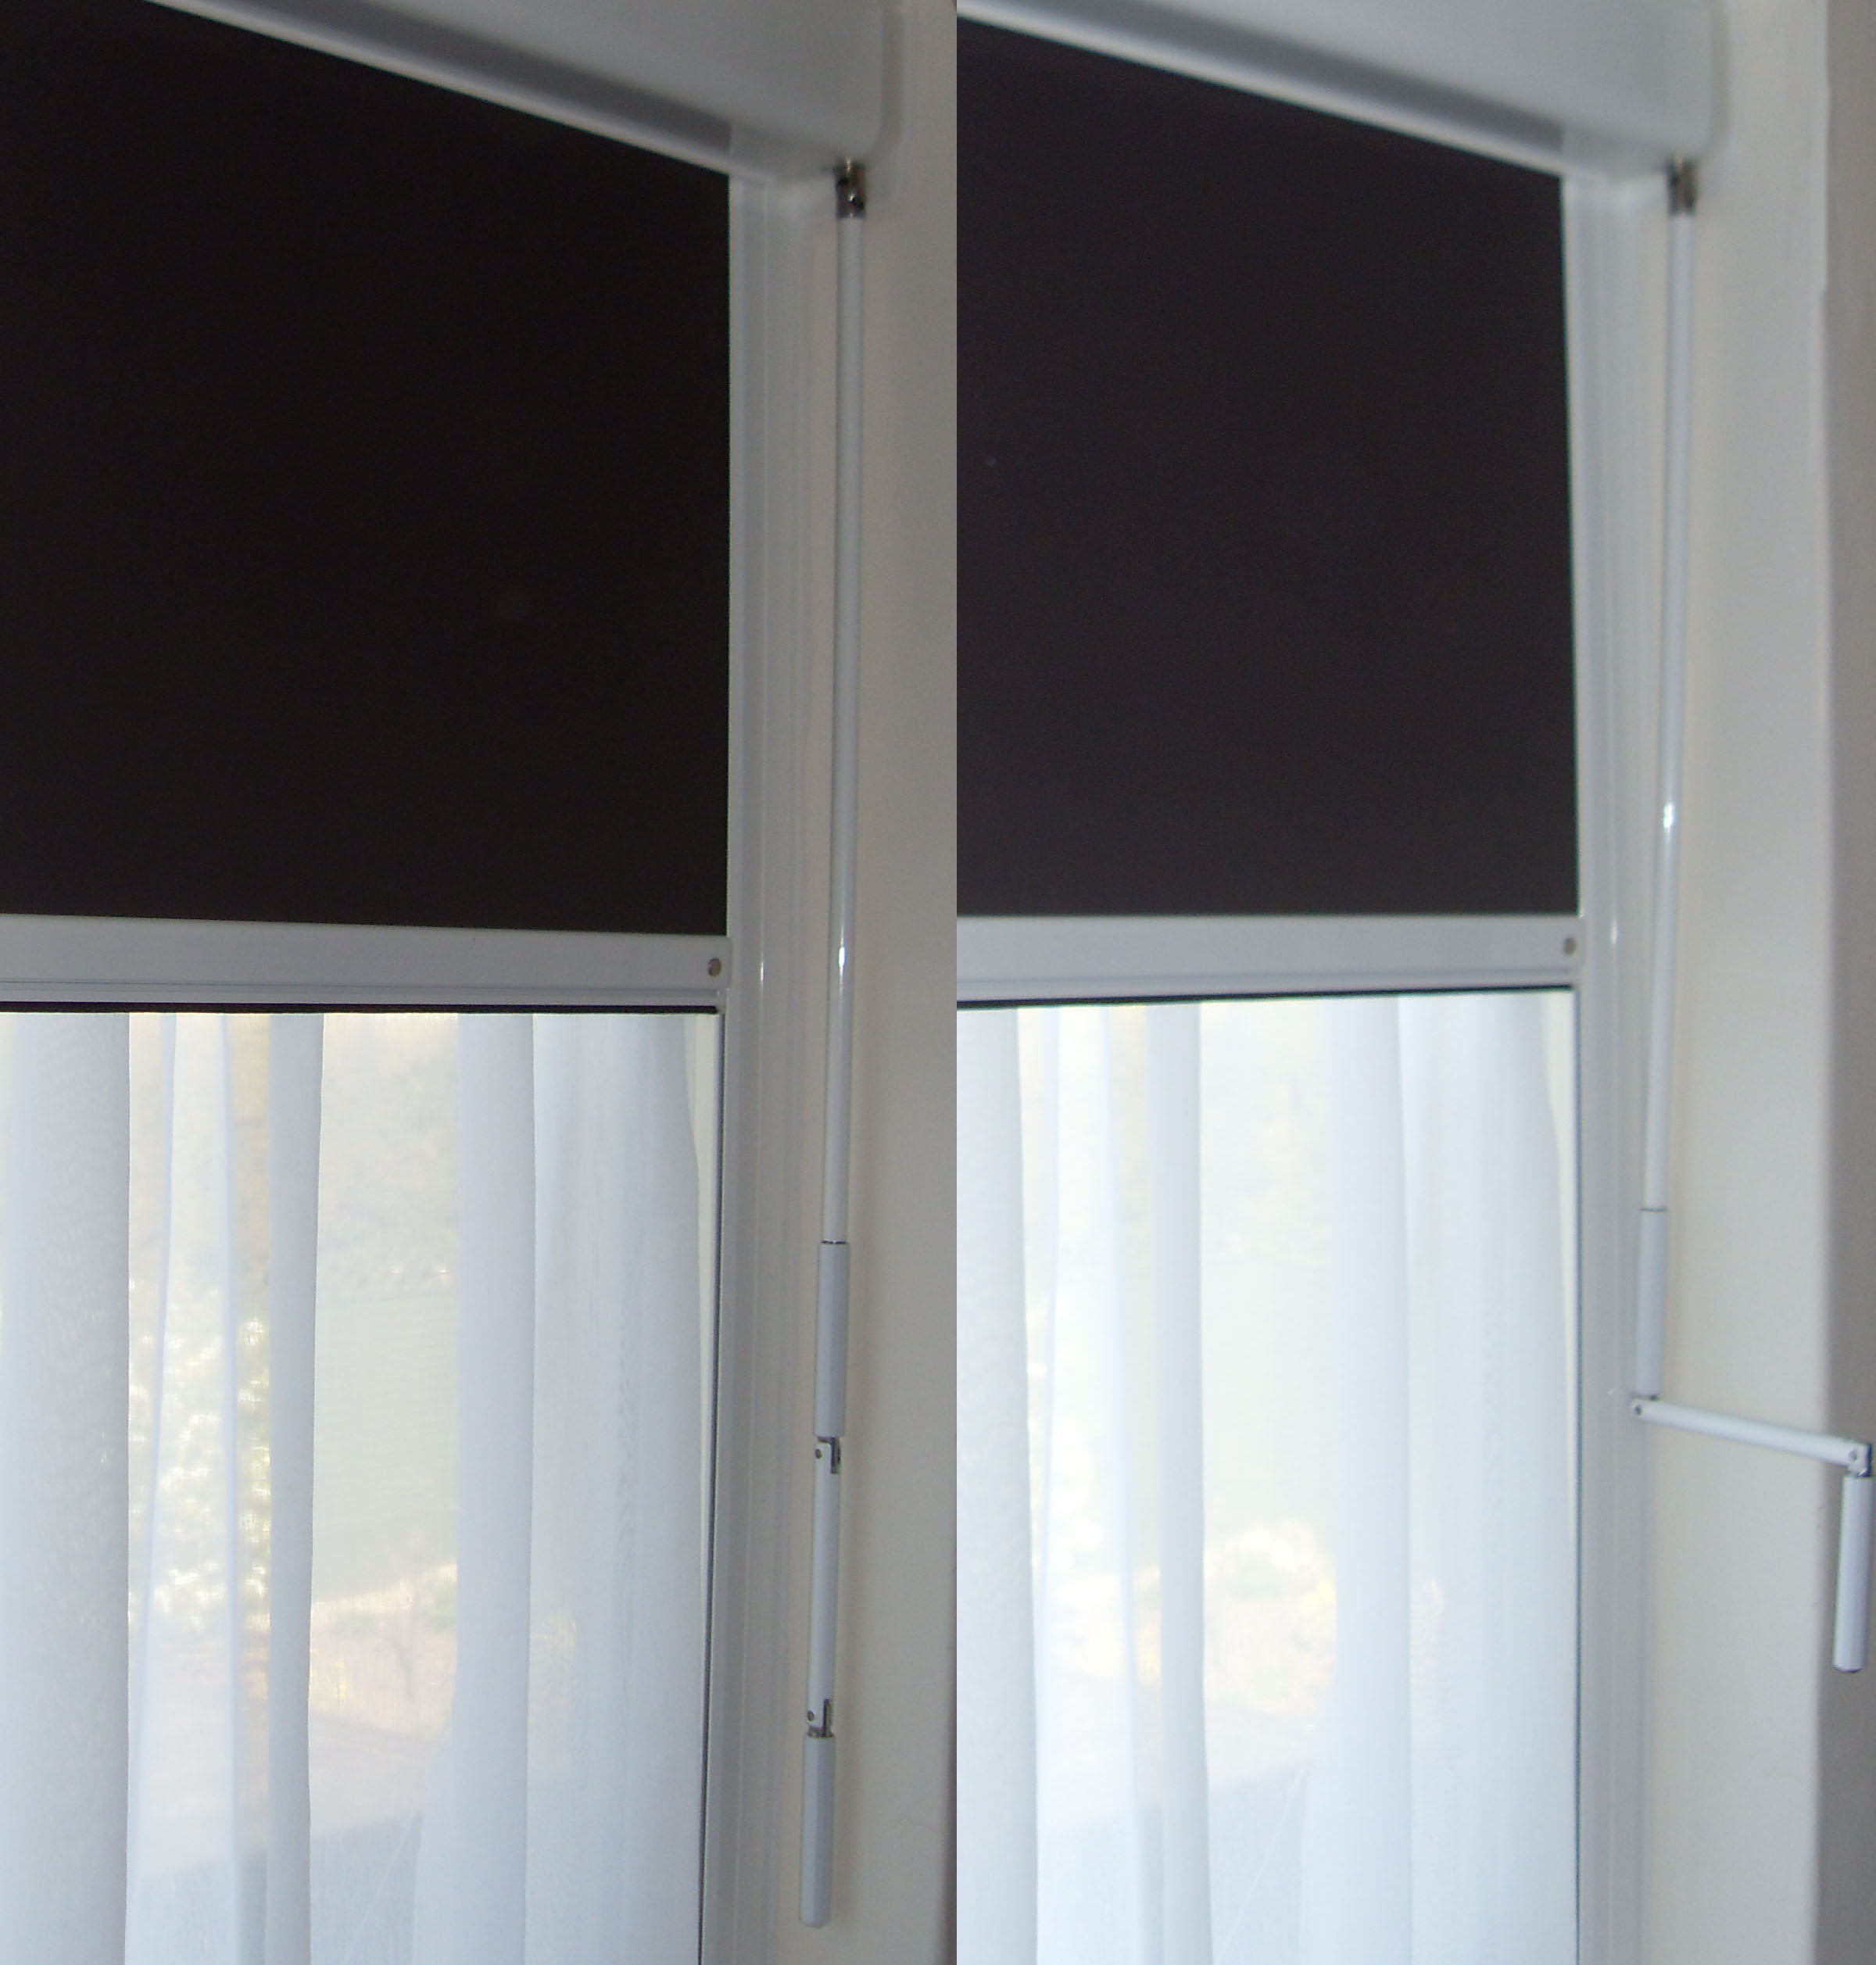 melbourne blinds product wynstan in sydney fabric roller blind